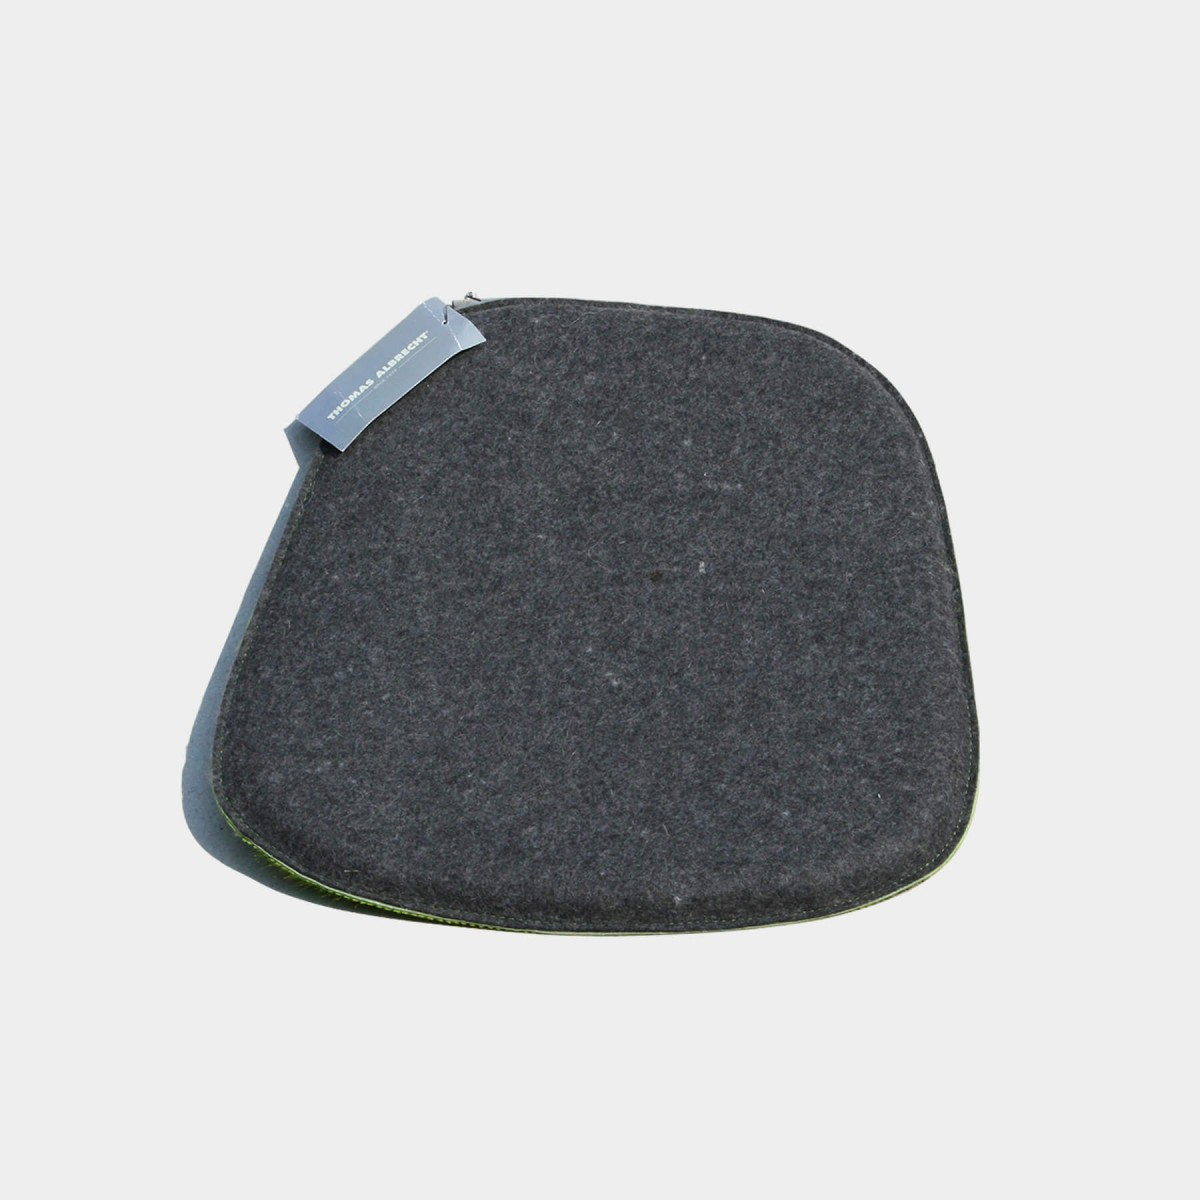 Kuhfell farbig exklusives kuhfell schwarz gefrbt x cm for Vitra imitat